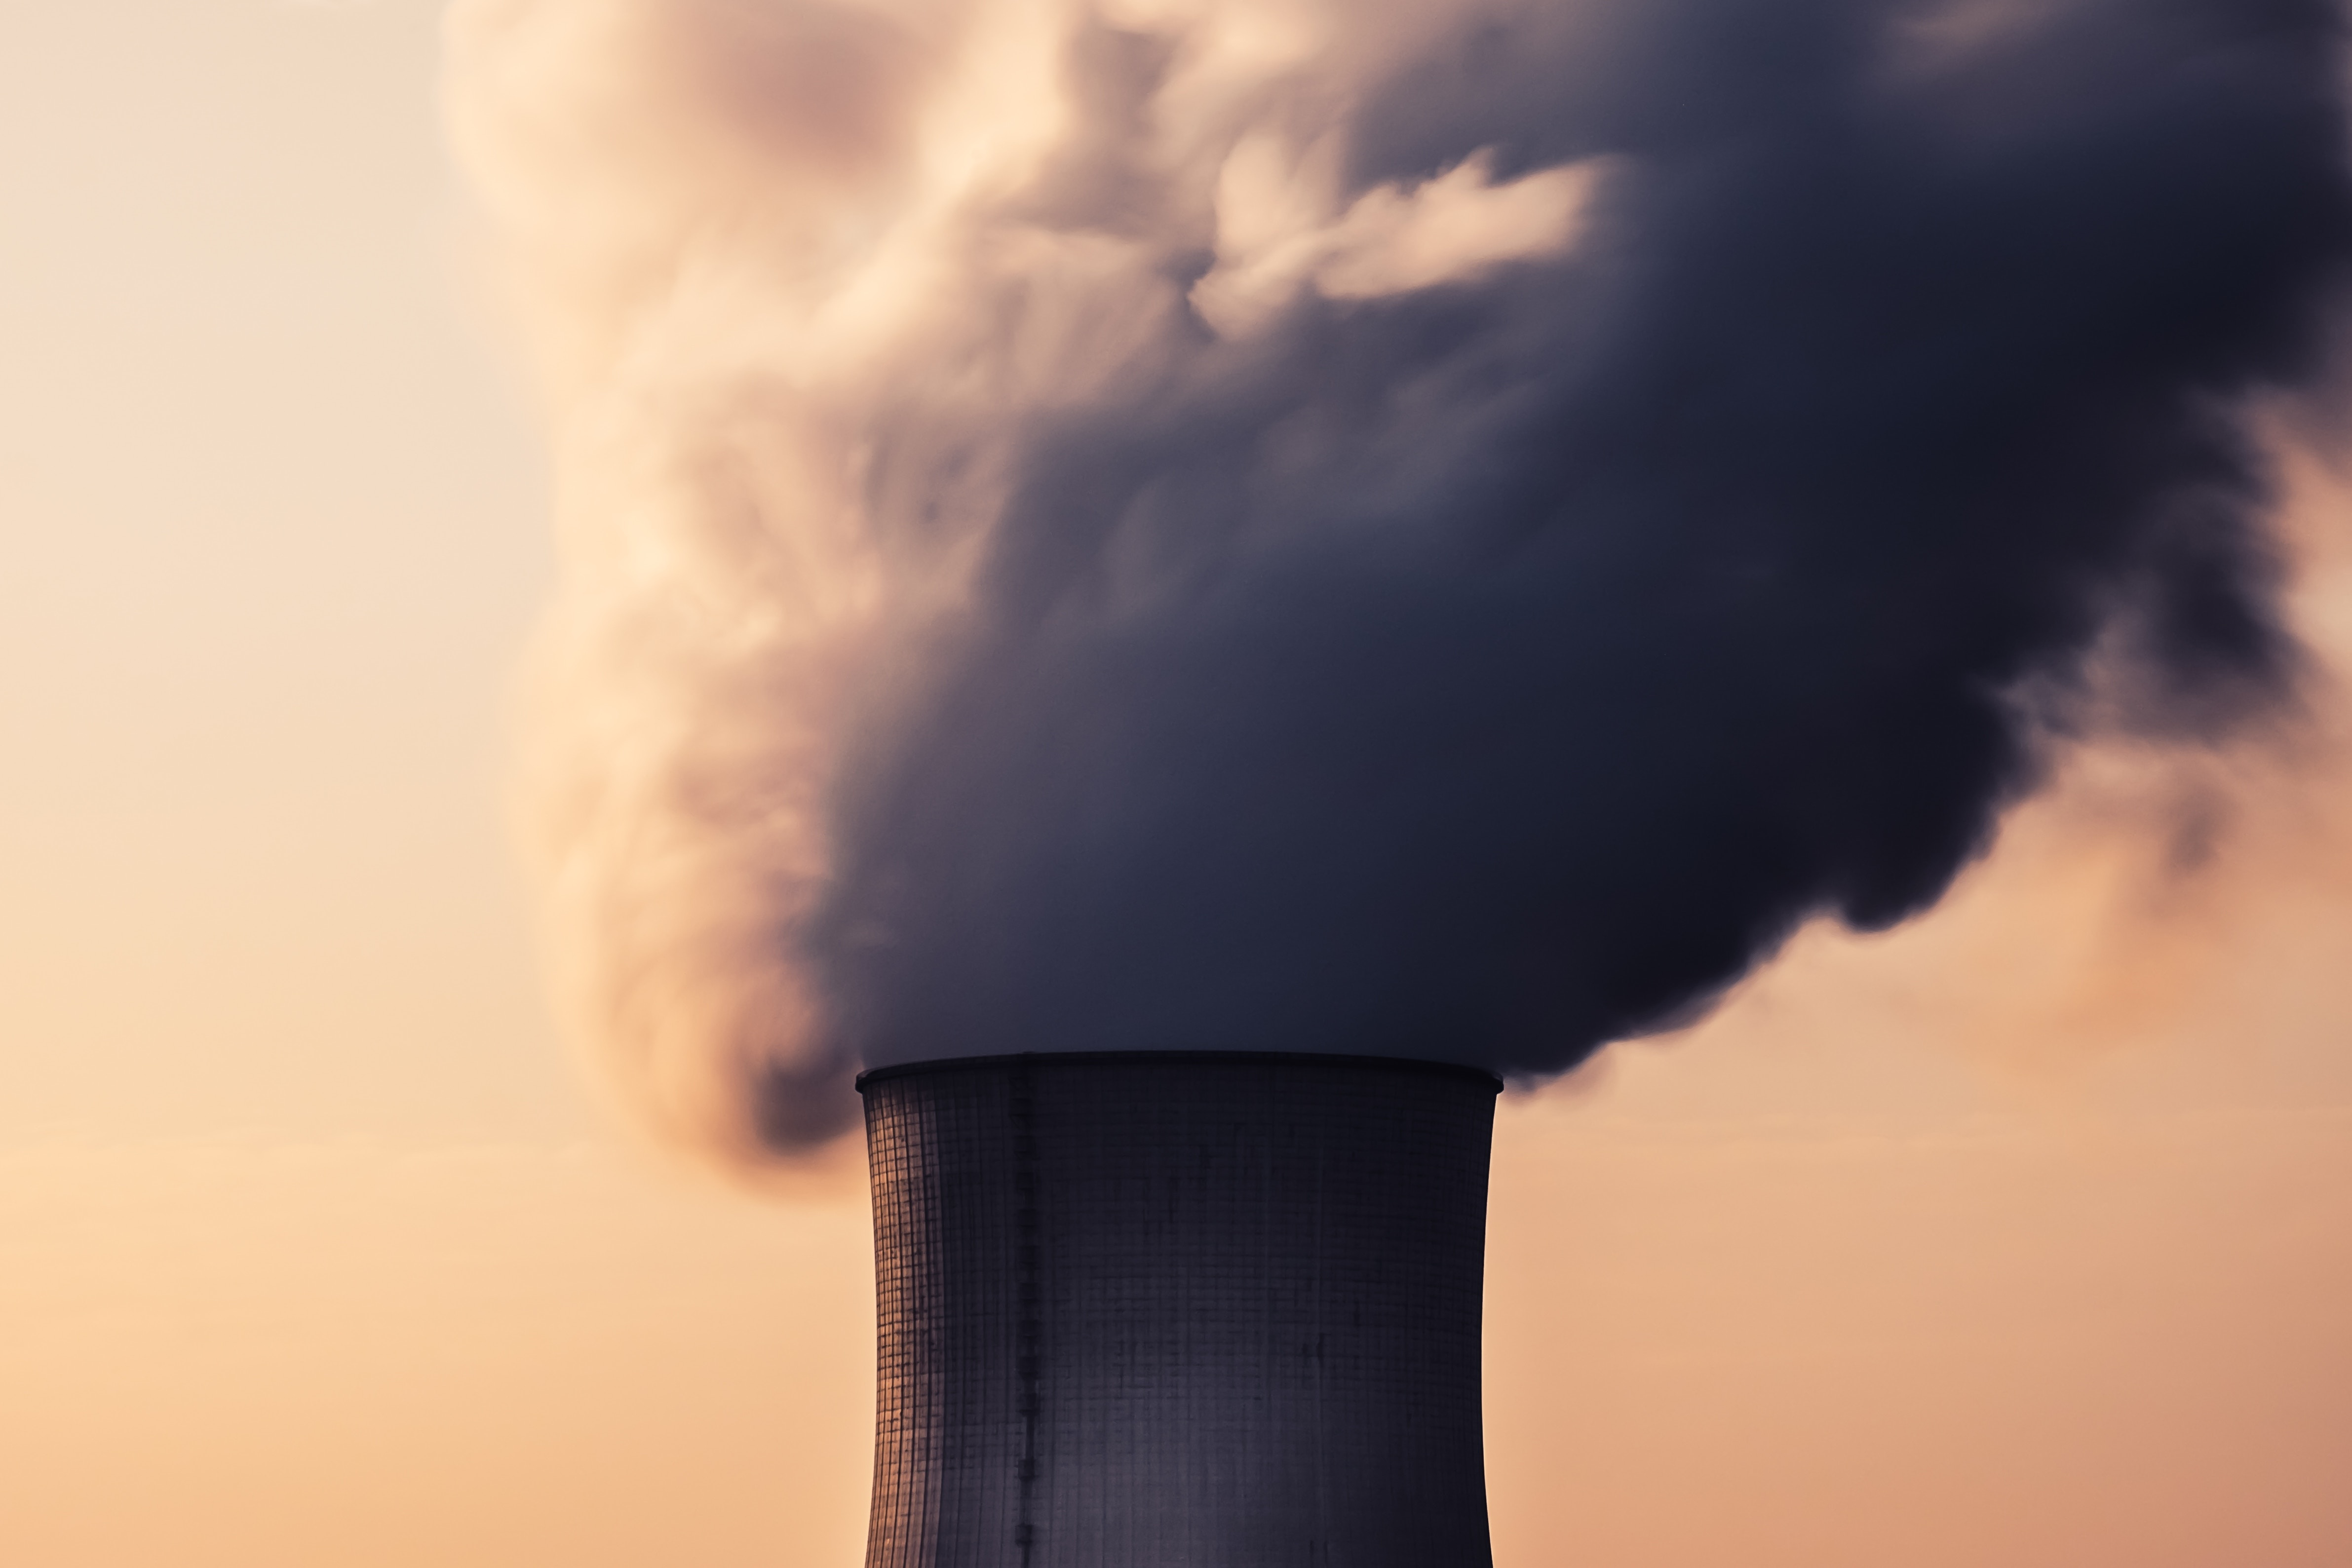 Nuclear power is not the answer in a time of climate change